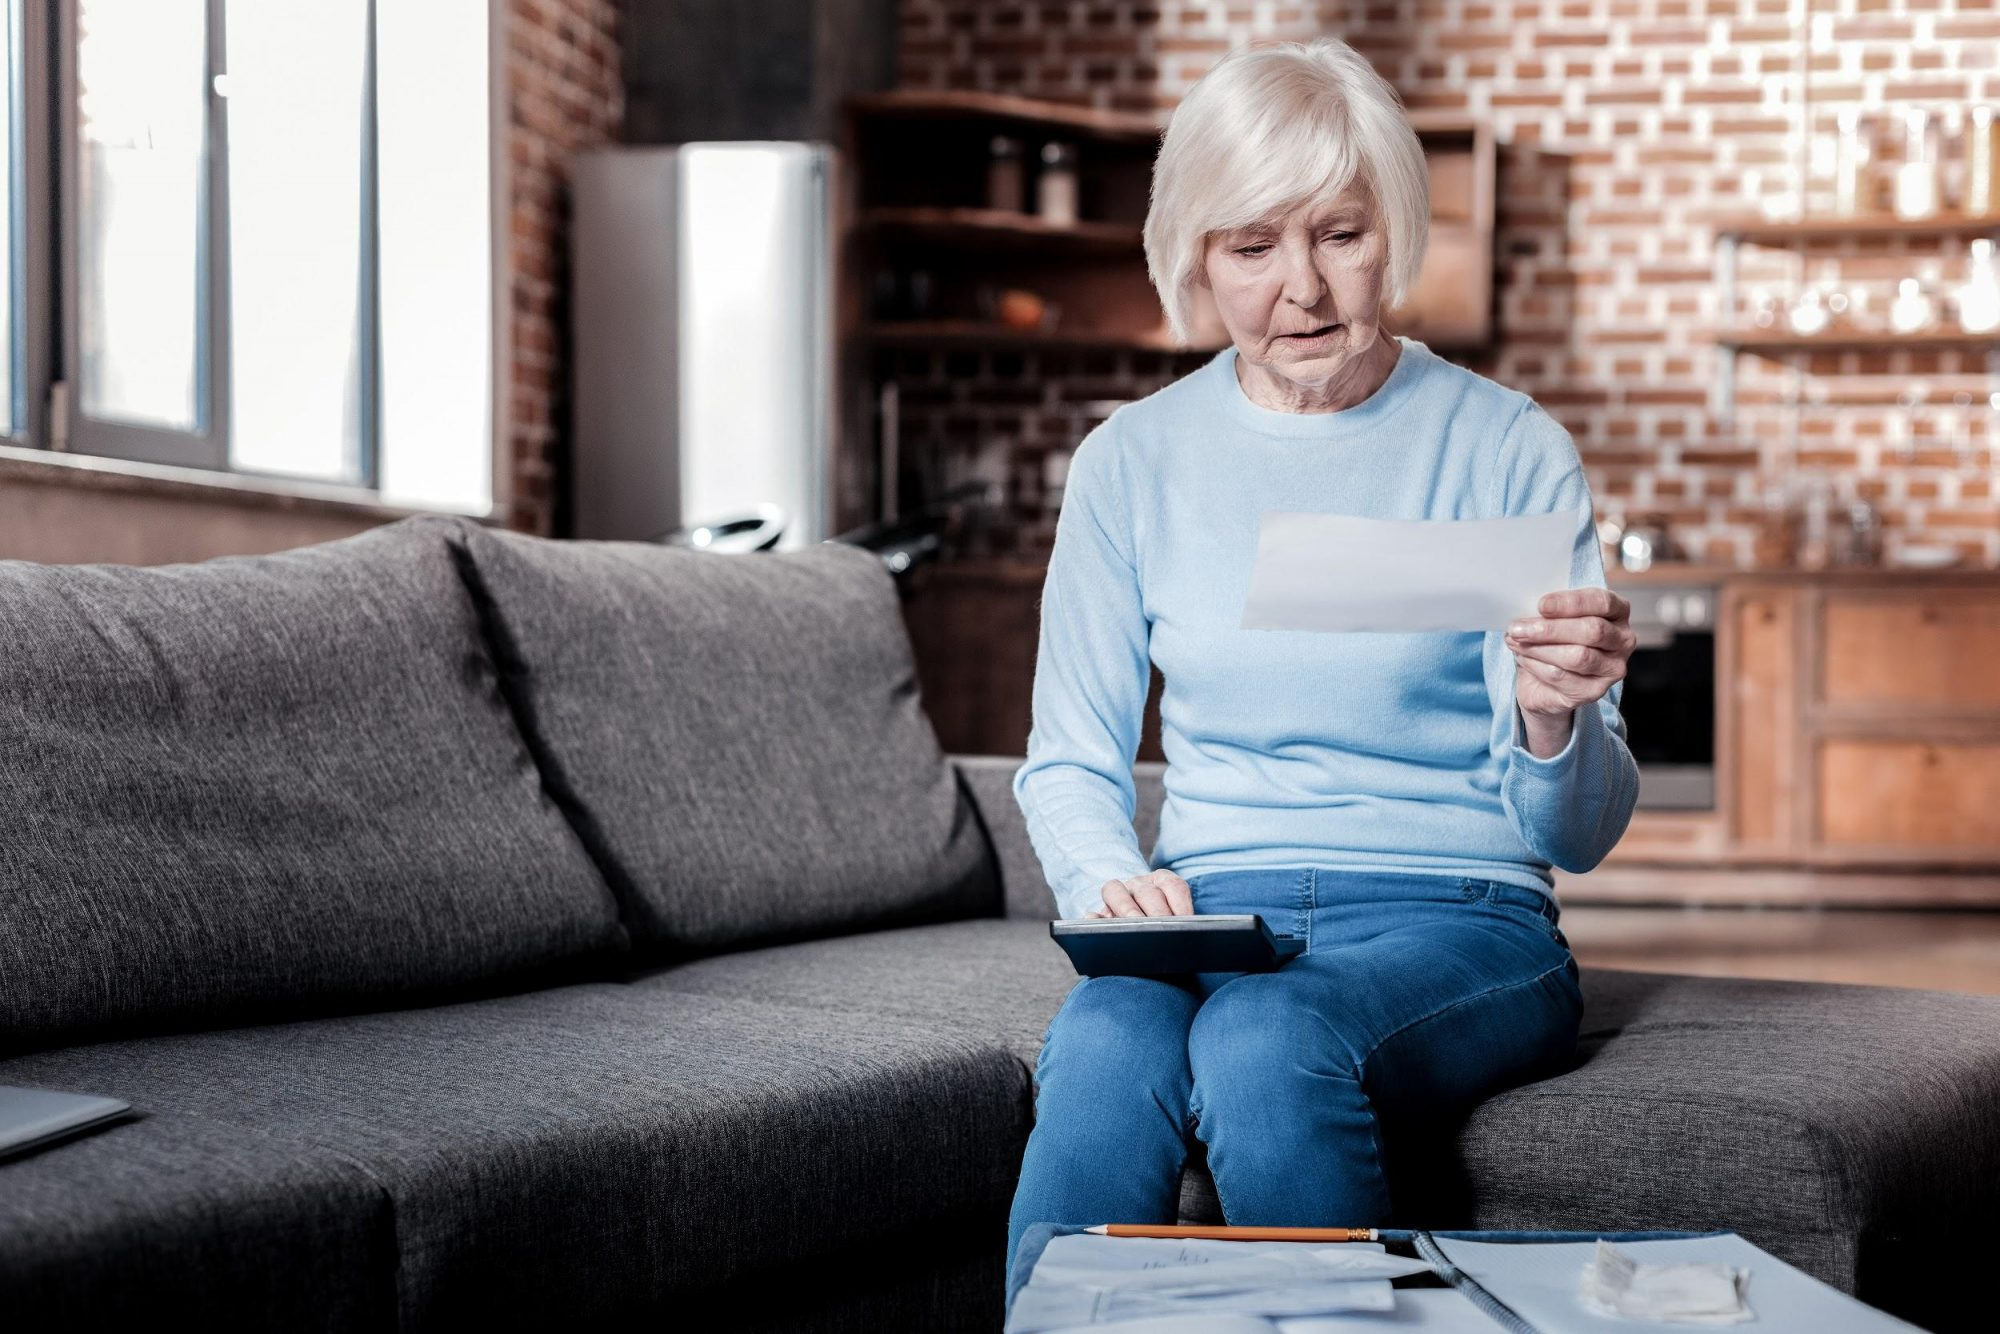 older Caucasian woman sitting on couch in home looking at piece of paper